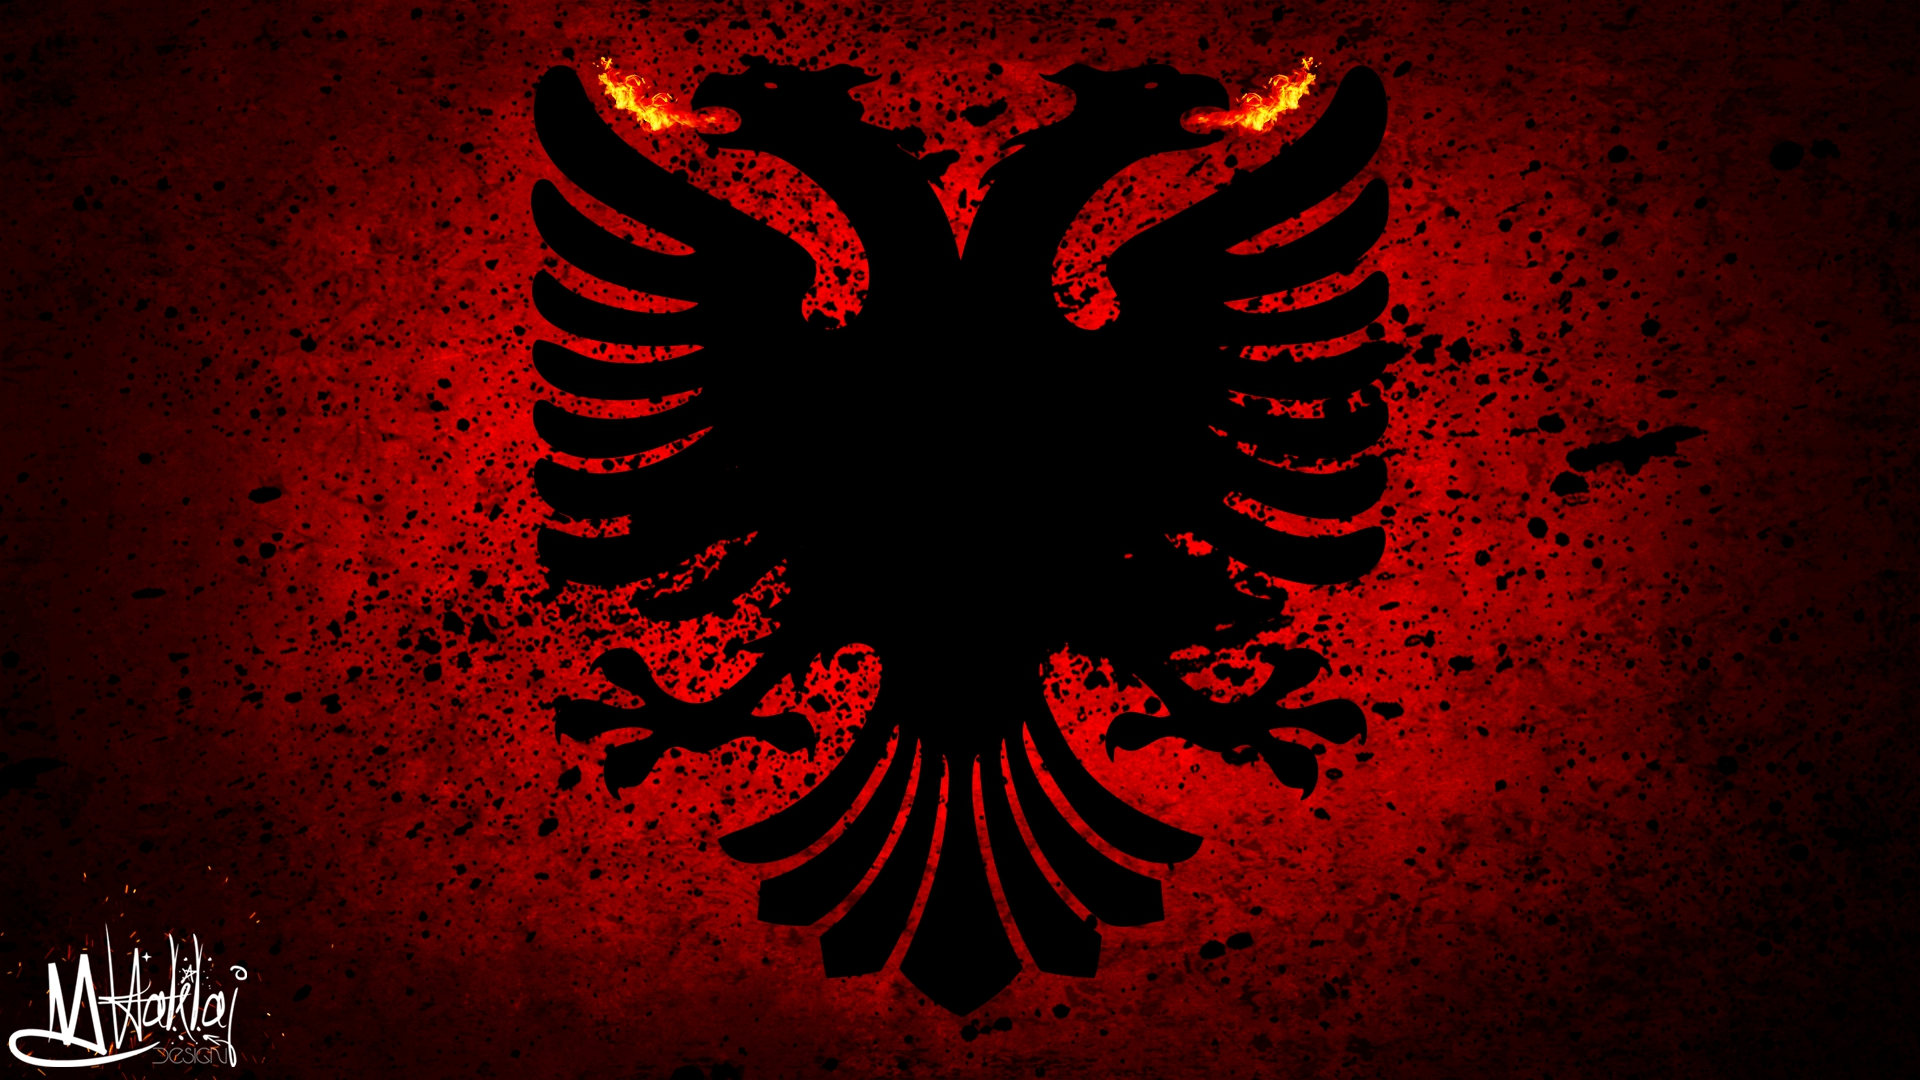 albanian flag grunge red black fire firered